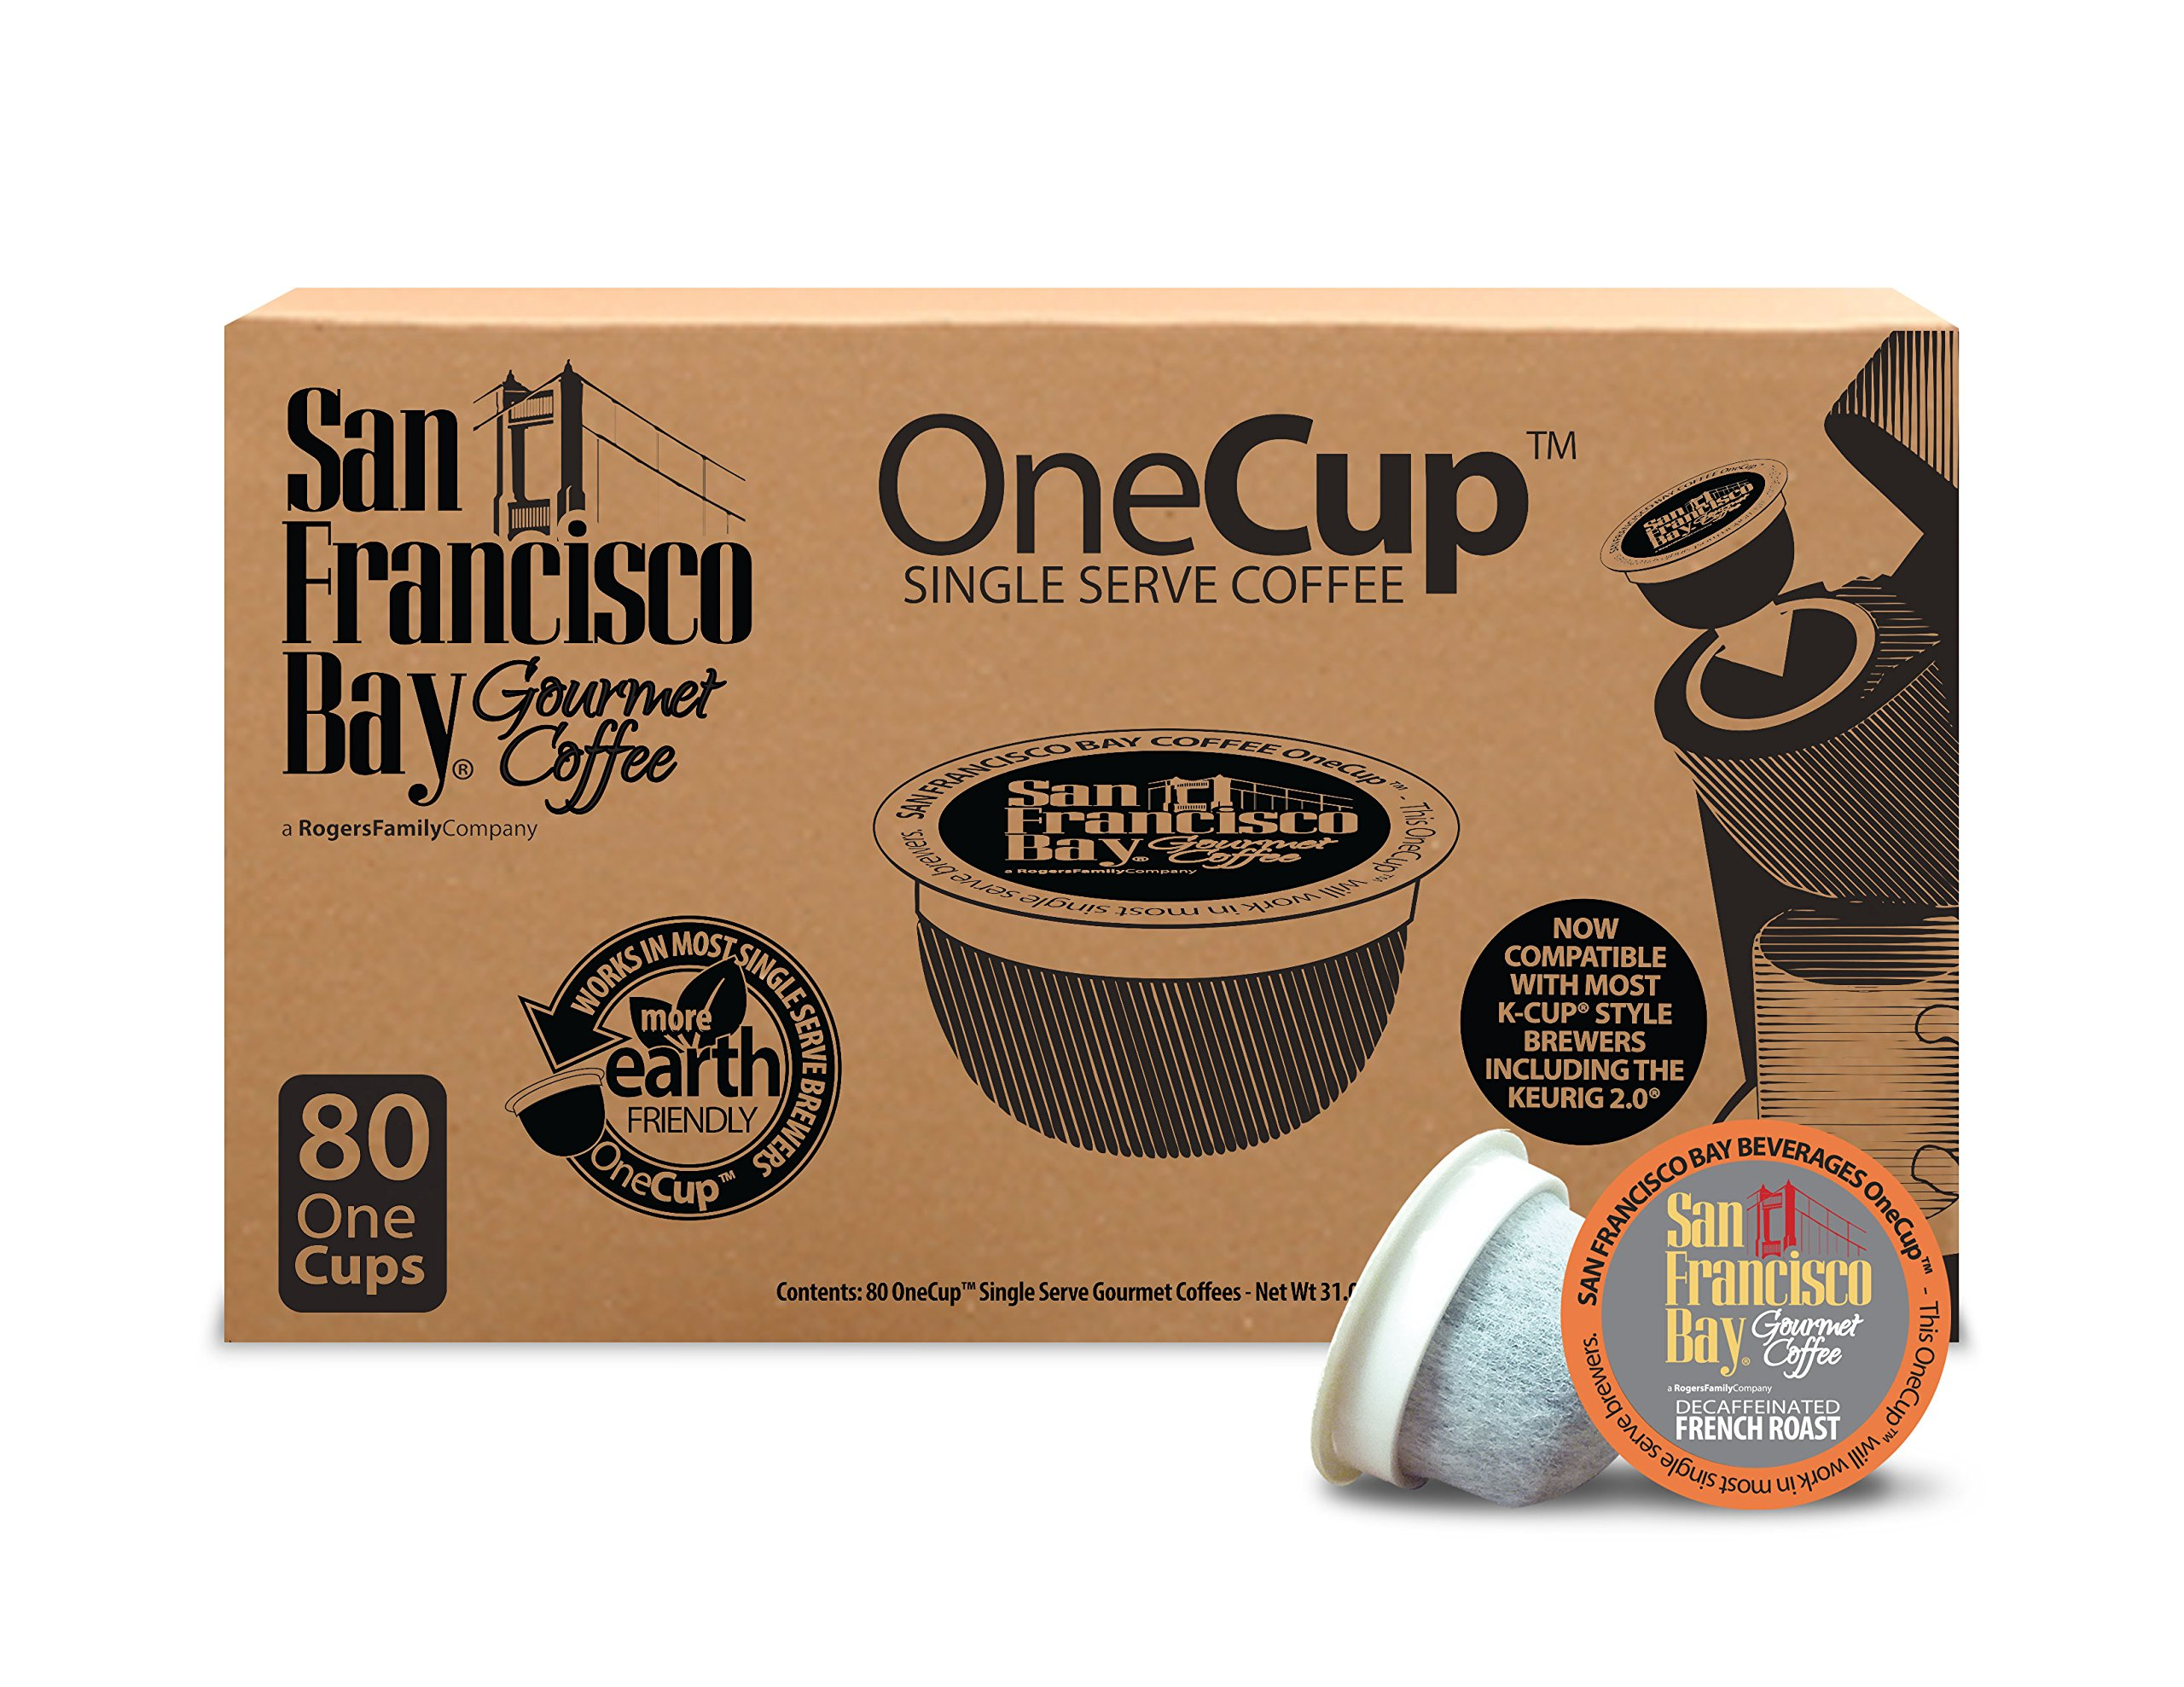 San Francisco Bay OneCup Decaf French Roast (80 Count) Single Serve Coffee Compatible with Keurig K-cup Brewers Single Serve Coffee Pods, Compatible with Keurig, Cuisinart, Bunn Single Serve Brewers